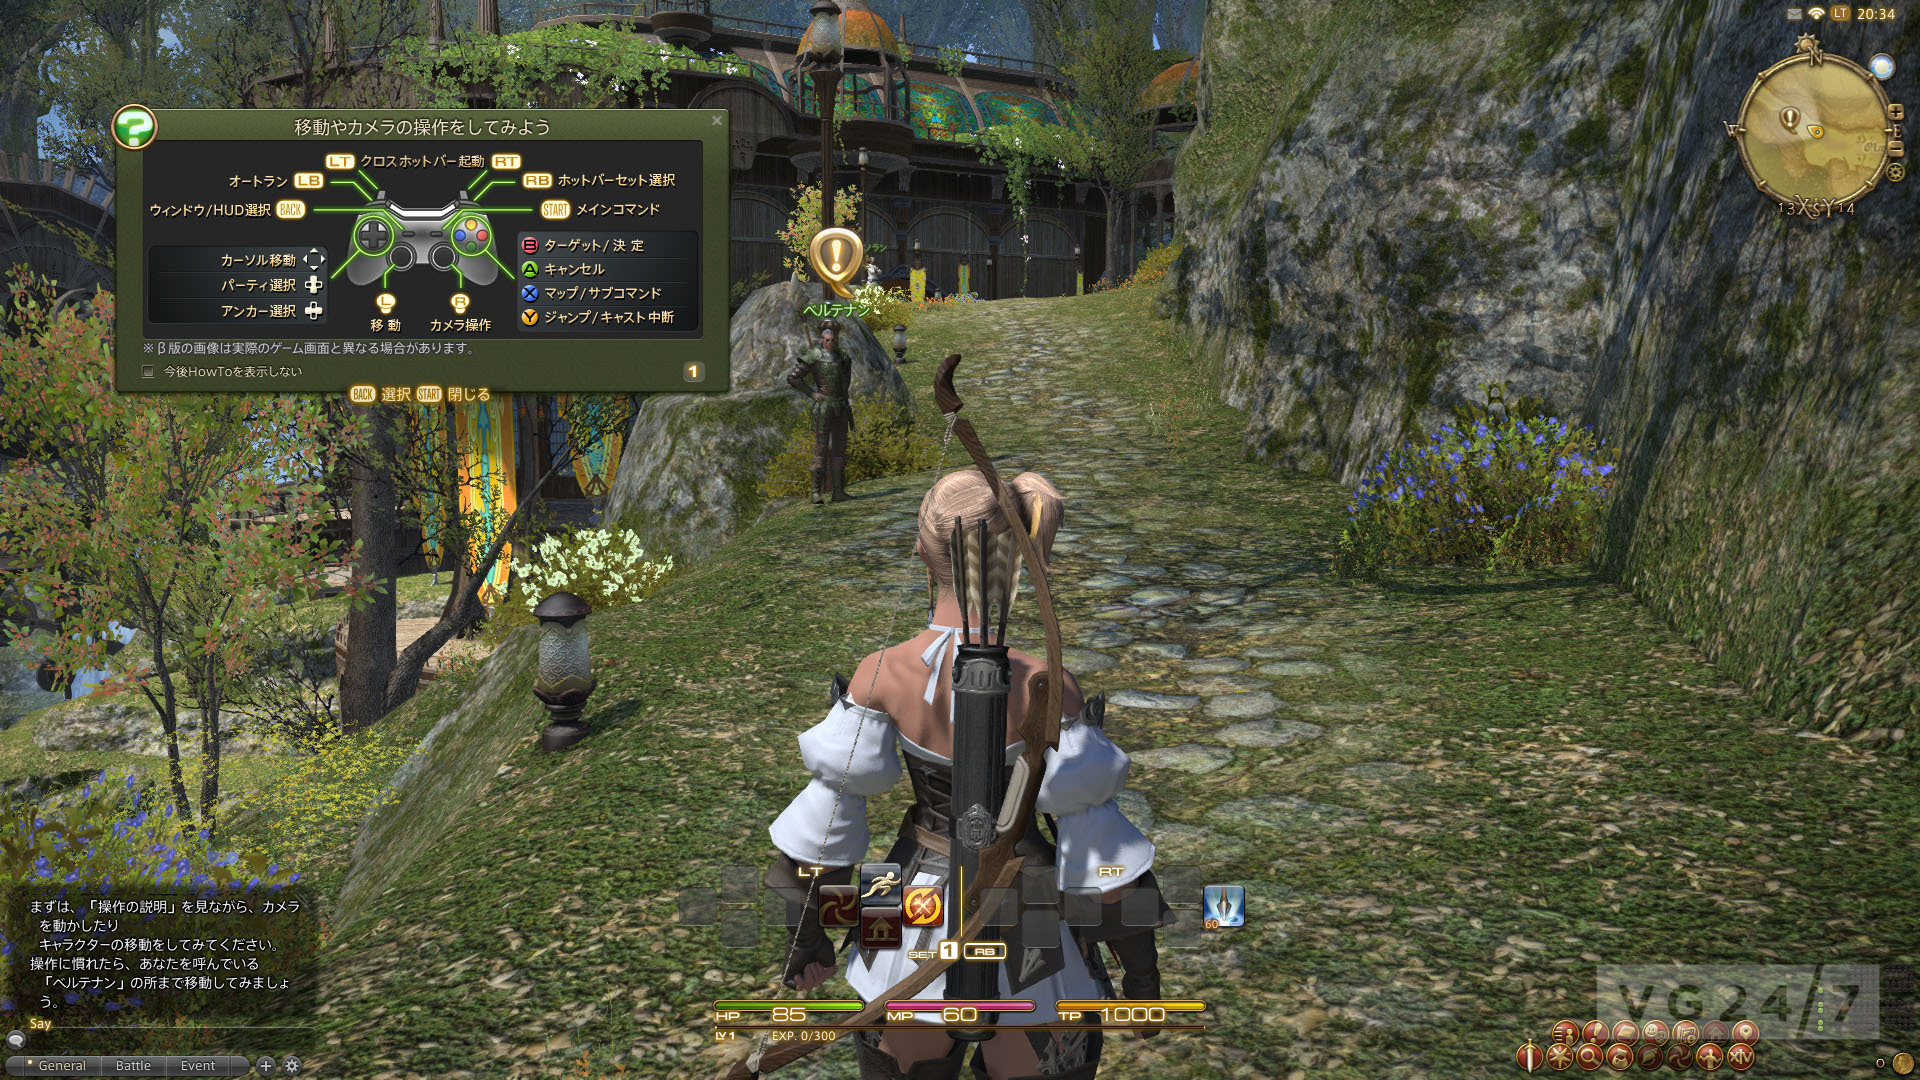 Final fantasy xiv gameplay - photo#24